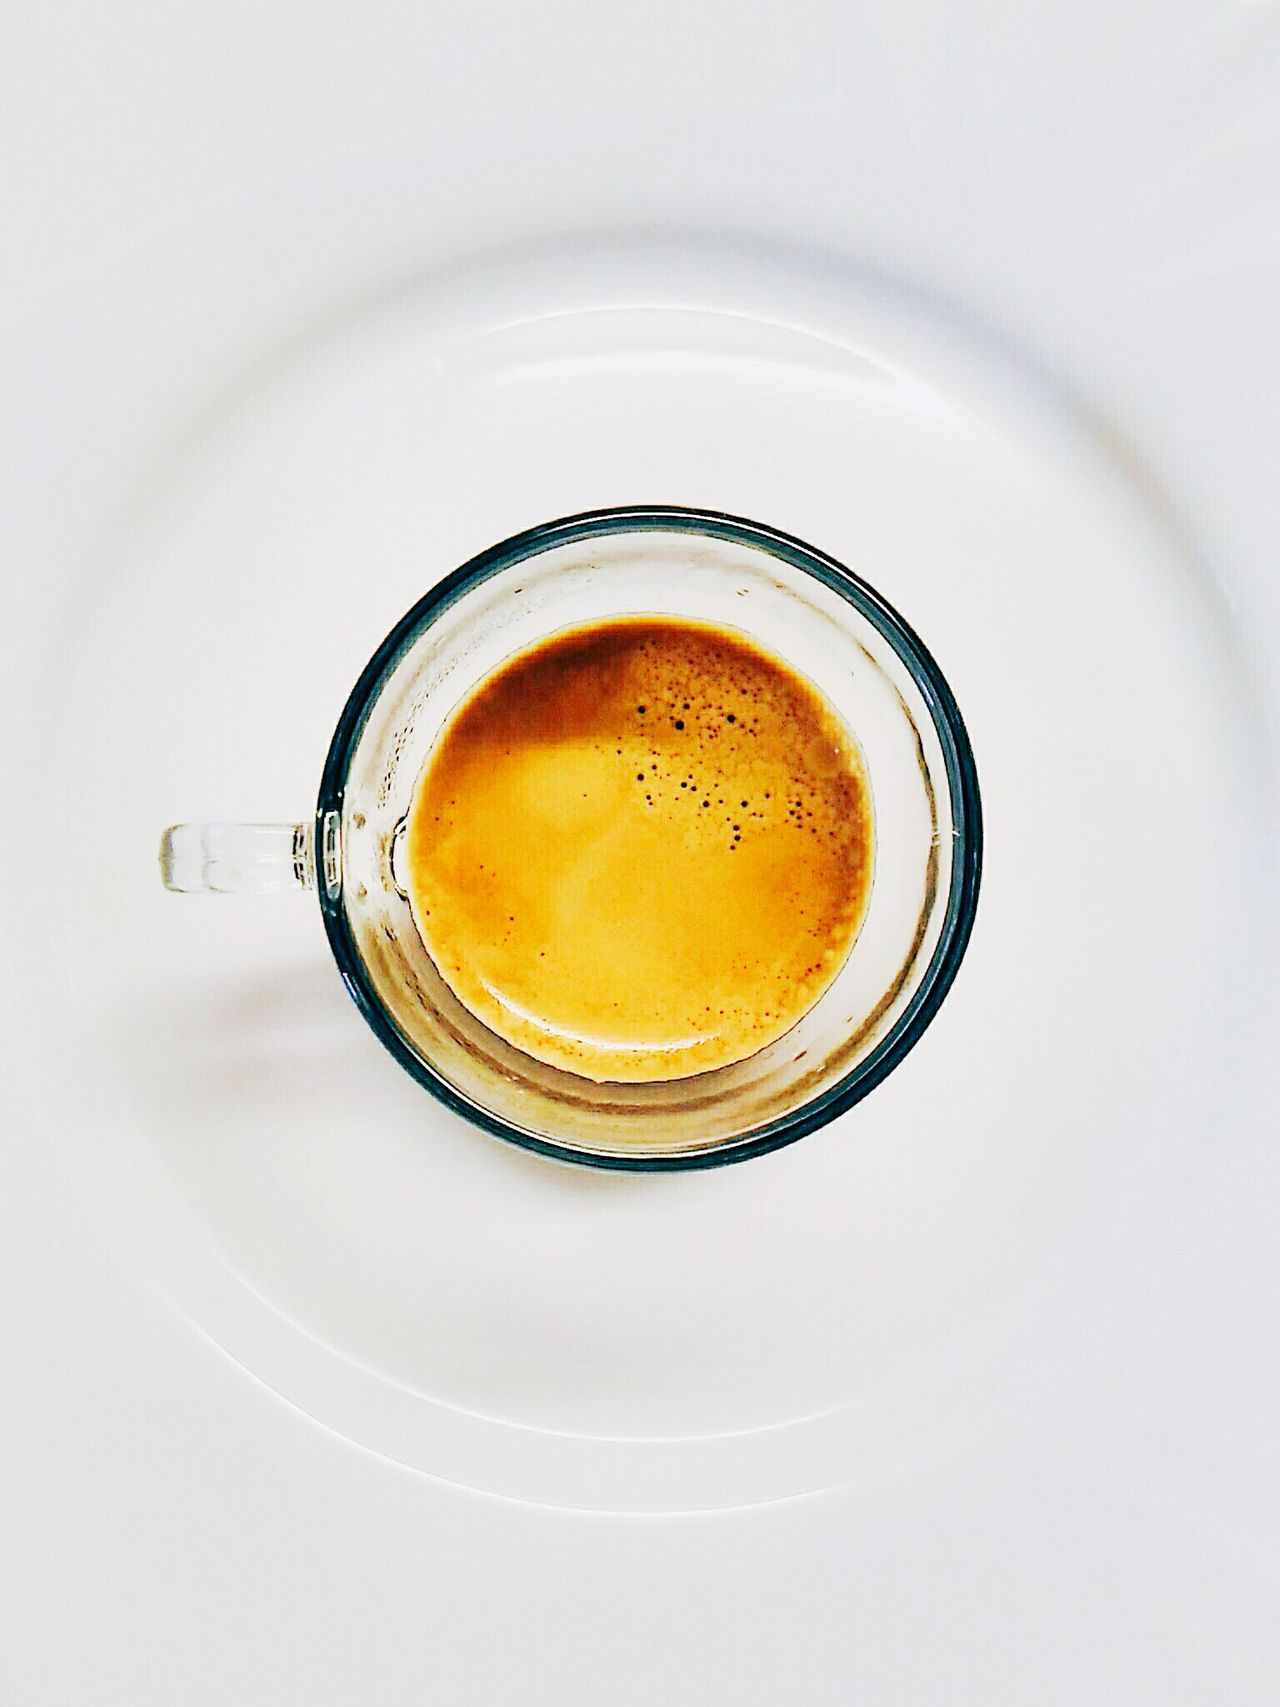 Coffe Espresso Italy Breakfast Foodphotography Coffelovers Food Drink Food And Drink Directly Above Refreshment Circle Indoors  Close-up Still Life Geometric Shape Beverage Freshness Extreme Close-up Full Frame Overhead View White Background Indulgence Studio Shot Extreme Close Up